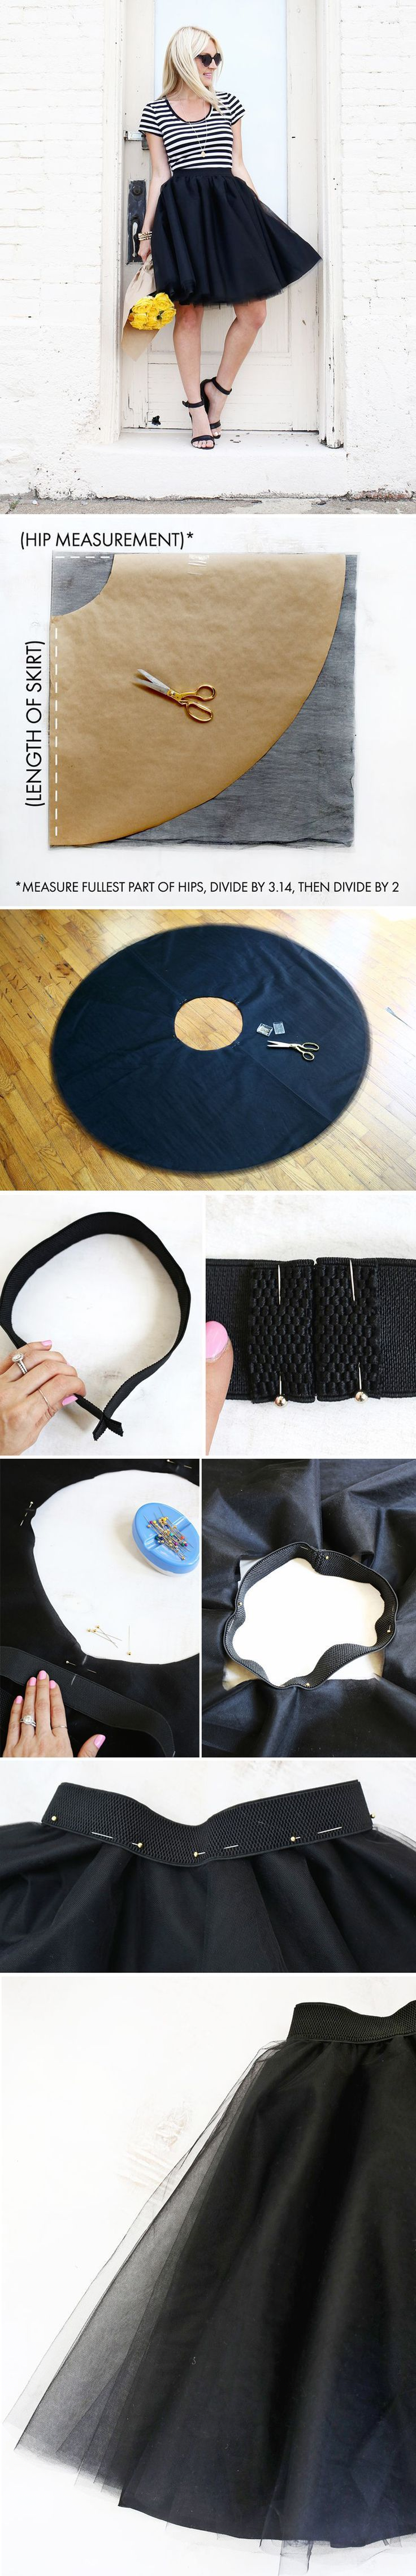 best stitchy witchy images on pinterest grunge clothes